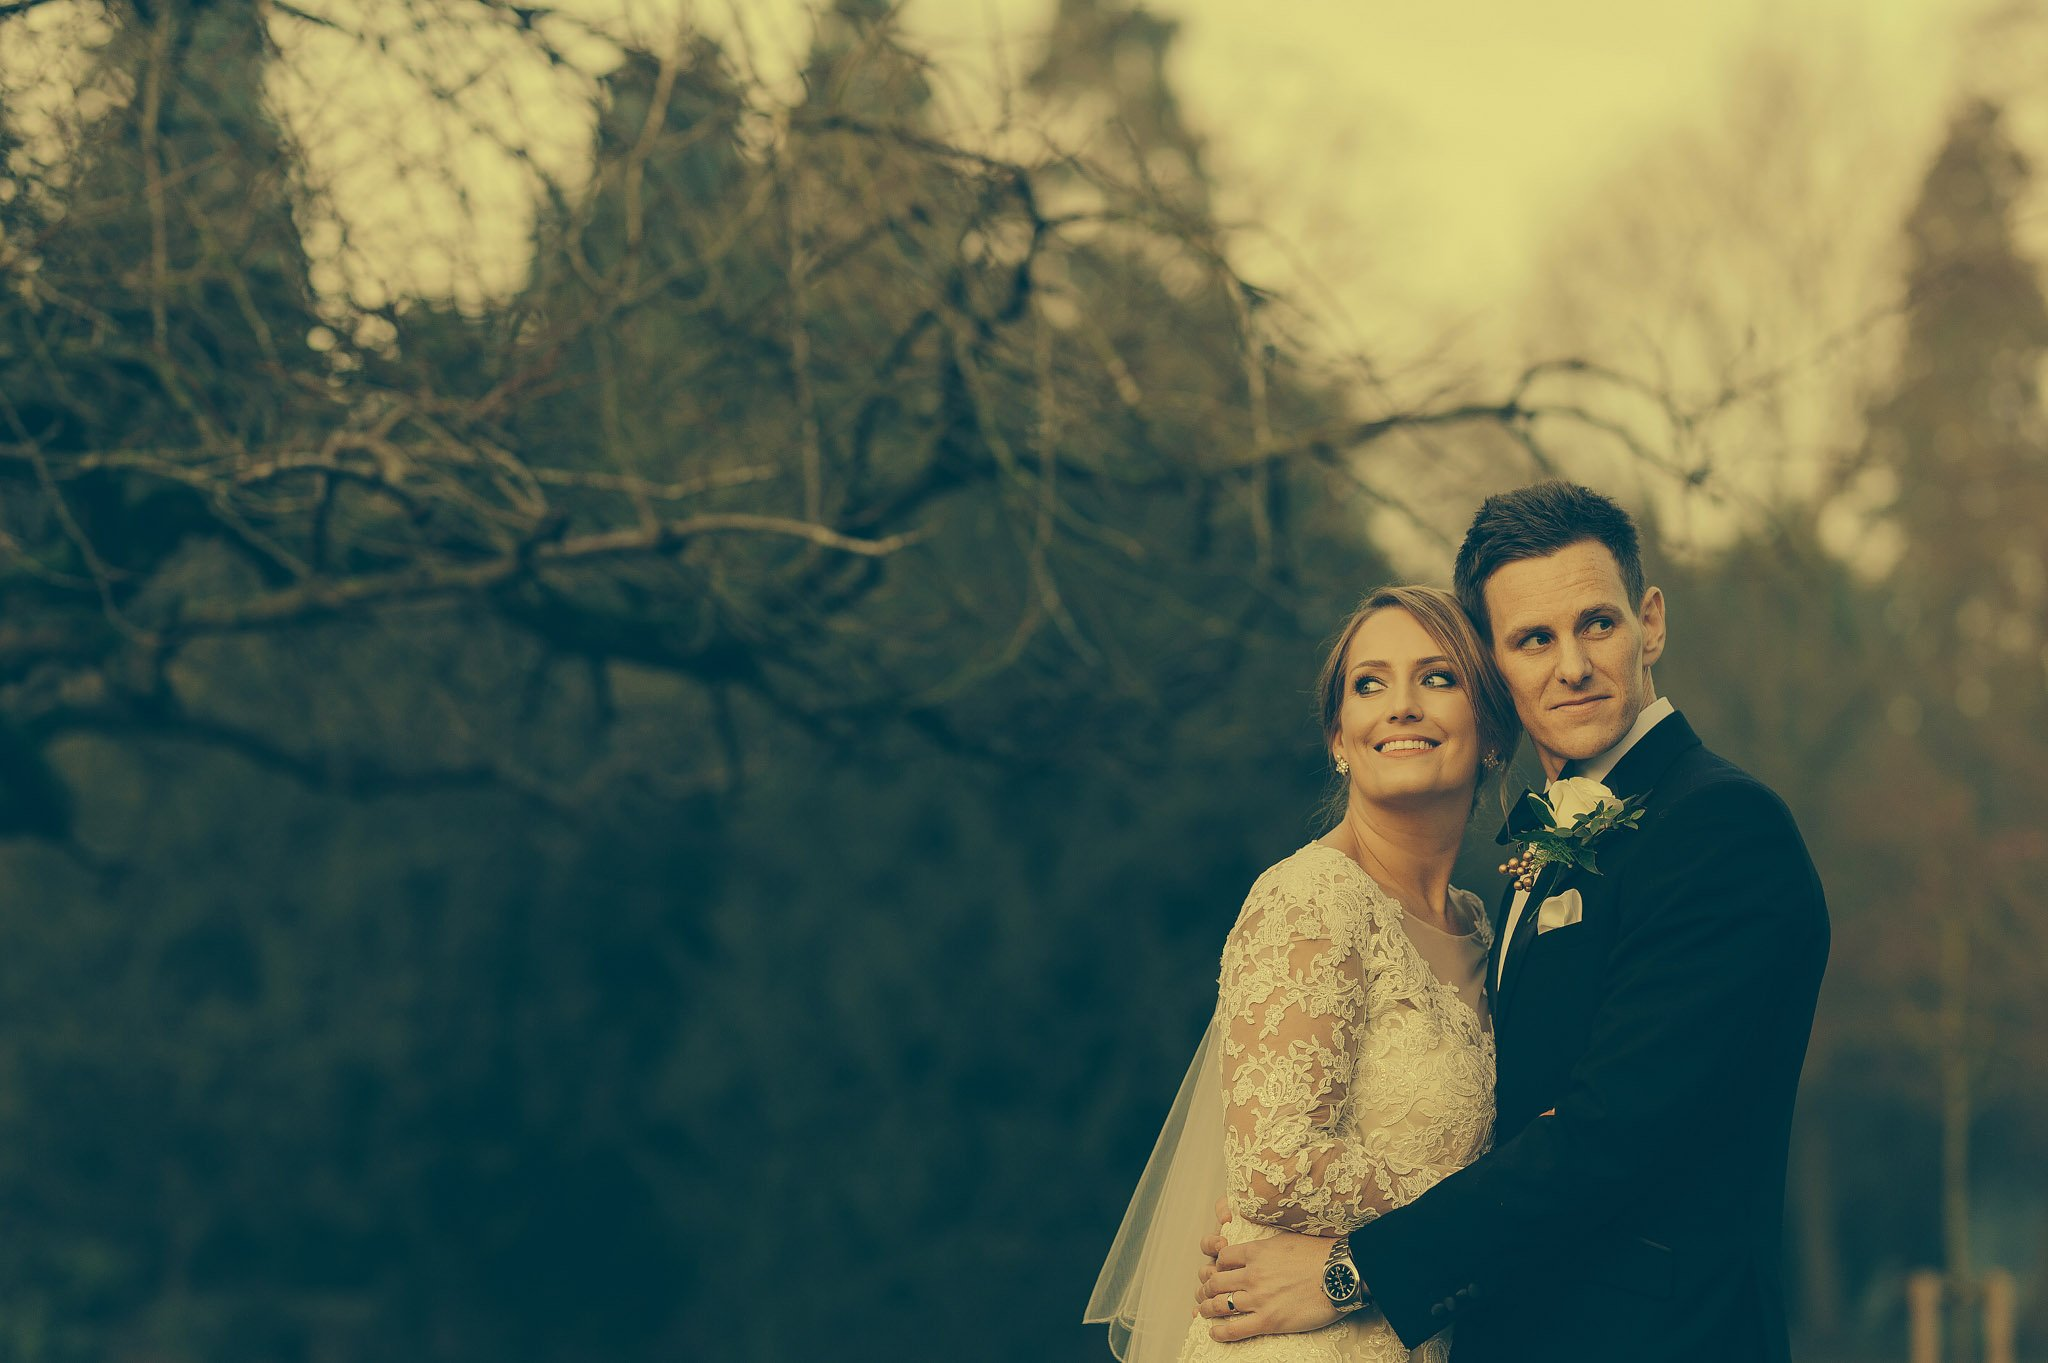 Coombe Abbey wedding in Coventry, Warwickshire - Sam + Matt 51